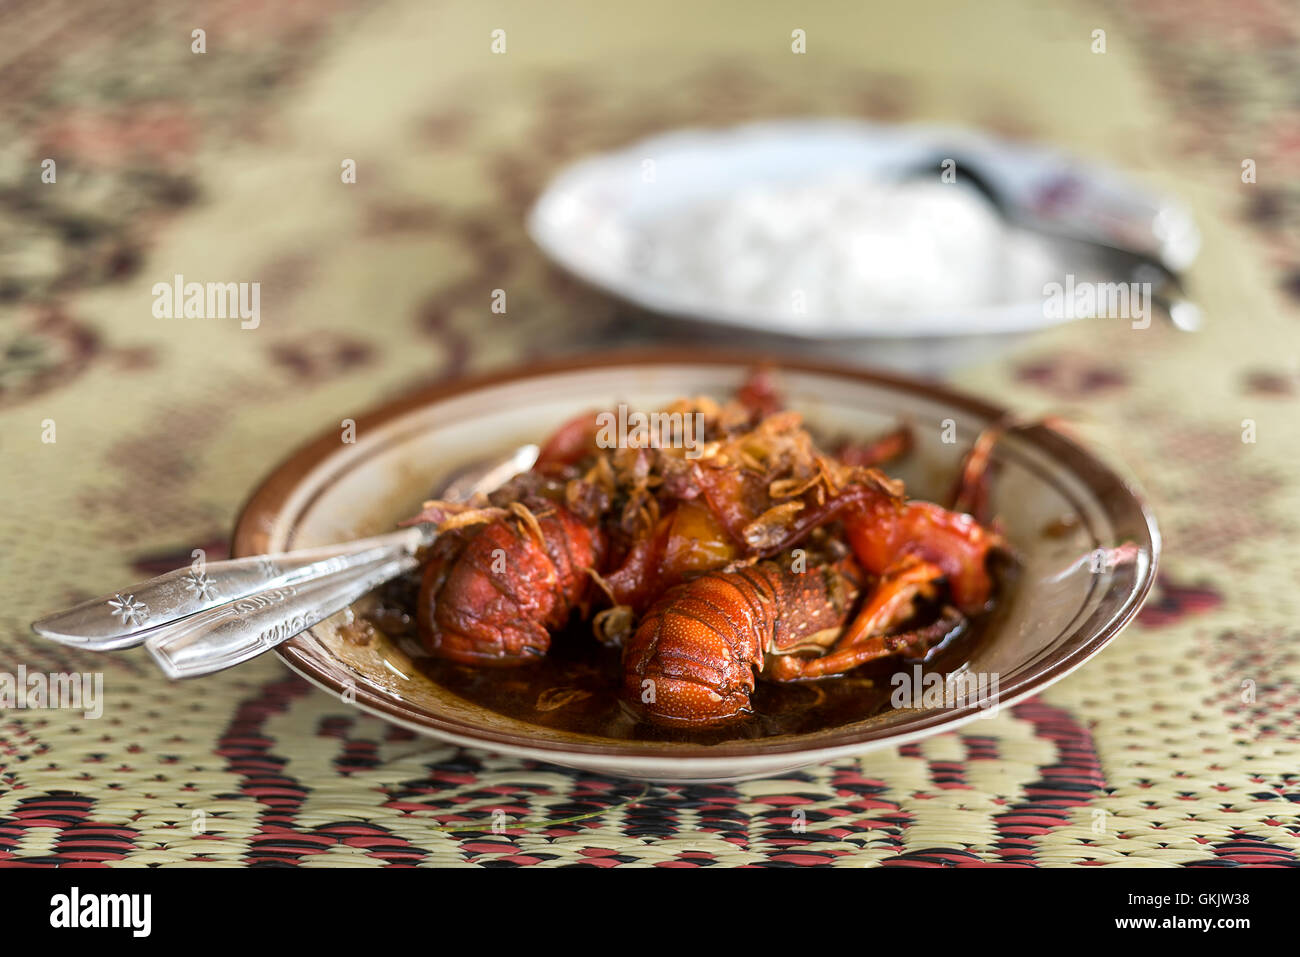 Red lobster in indoinesian beach style cuisine - Stock Image